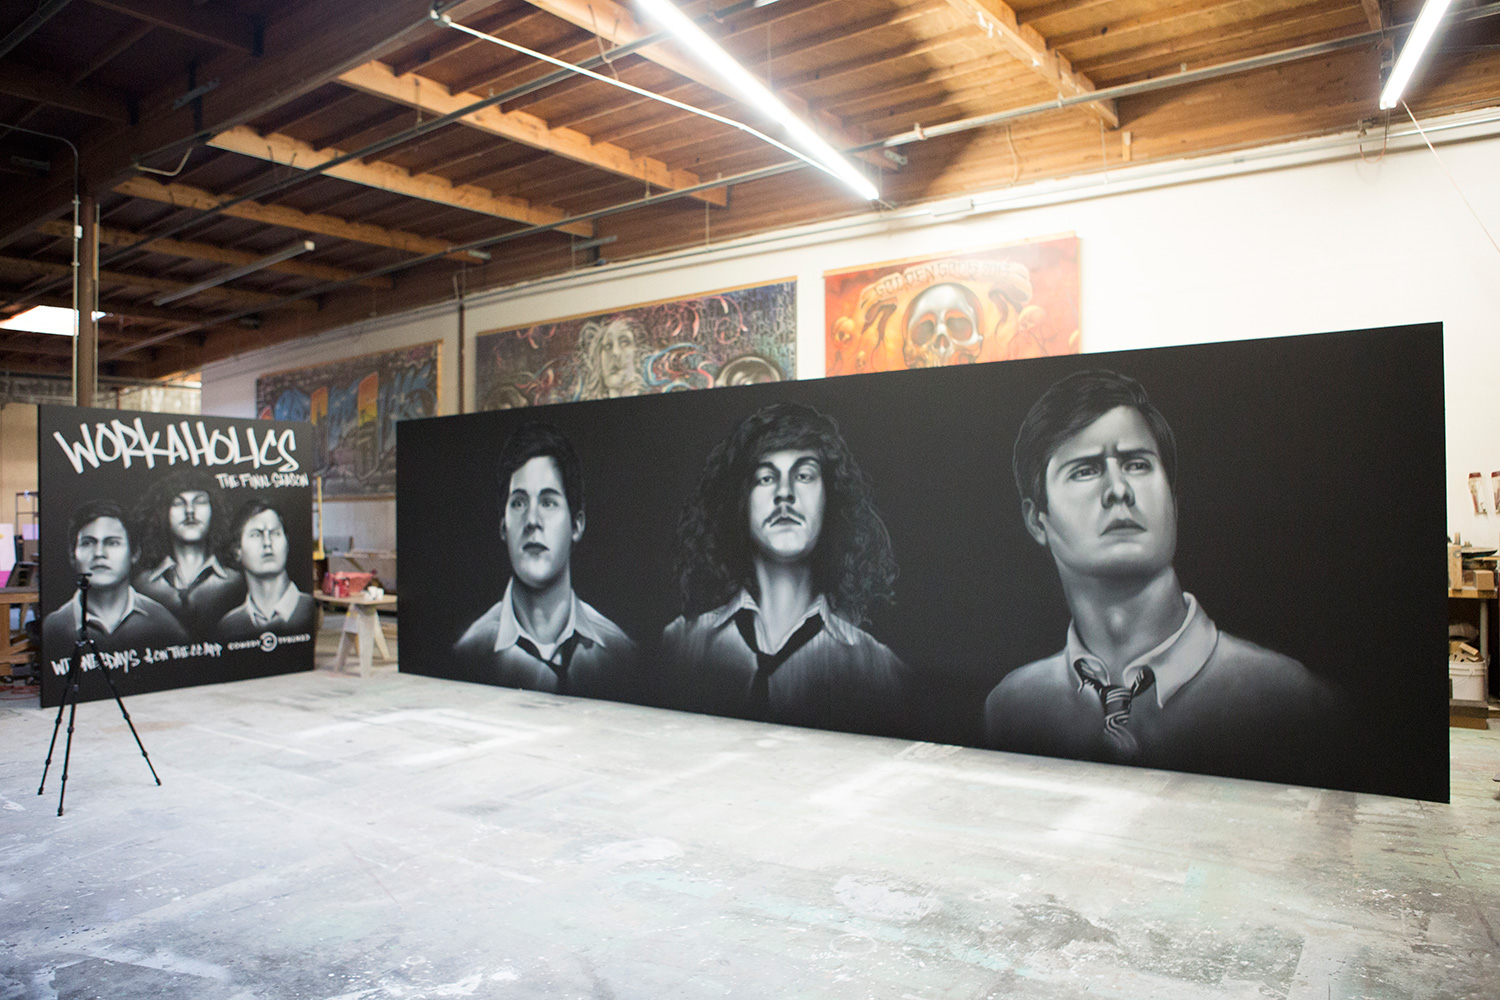 Comedy Central Mural Painted for Workaholics